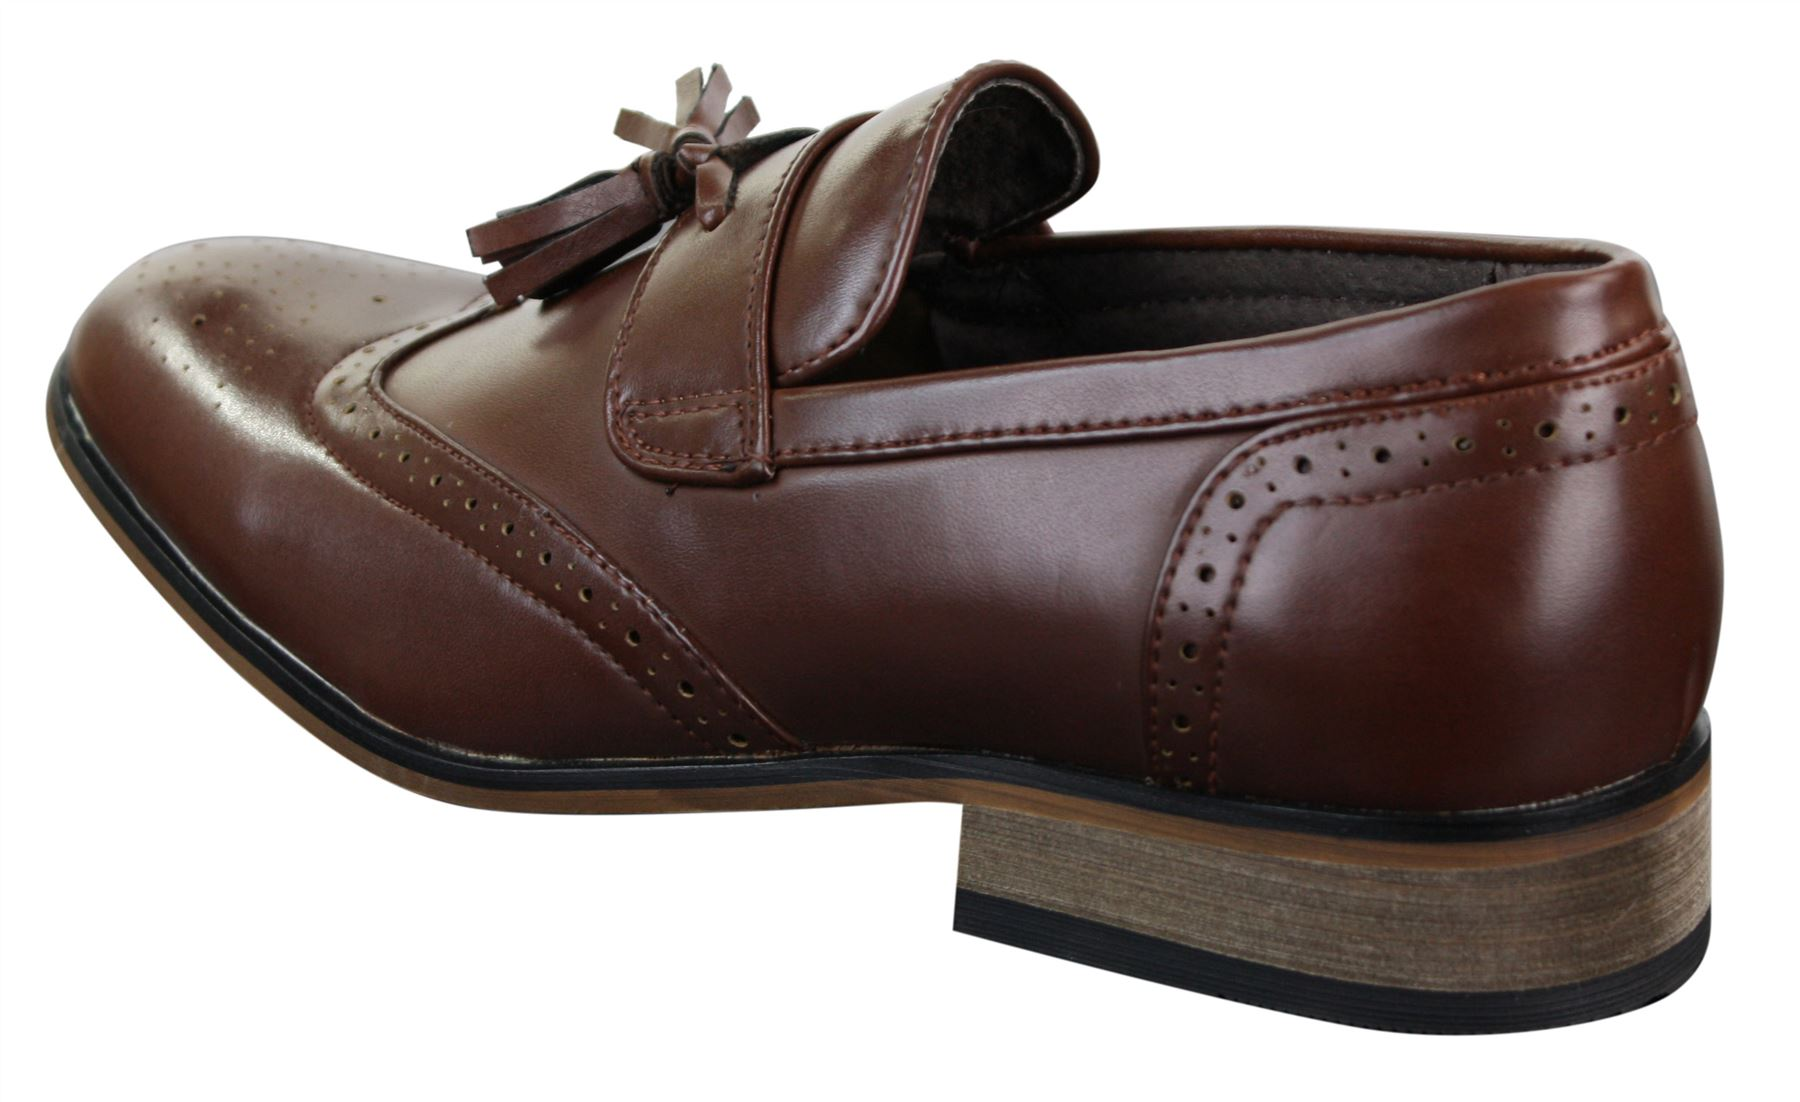 chaussures chaussures Mocassins homme pampilles pampilles pampilles cuir PU  cuir et style avec OHpqwdH7 76ec96dbe5f9